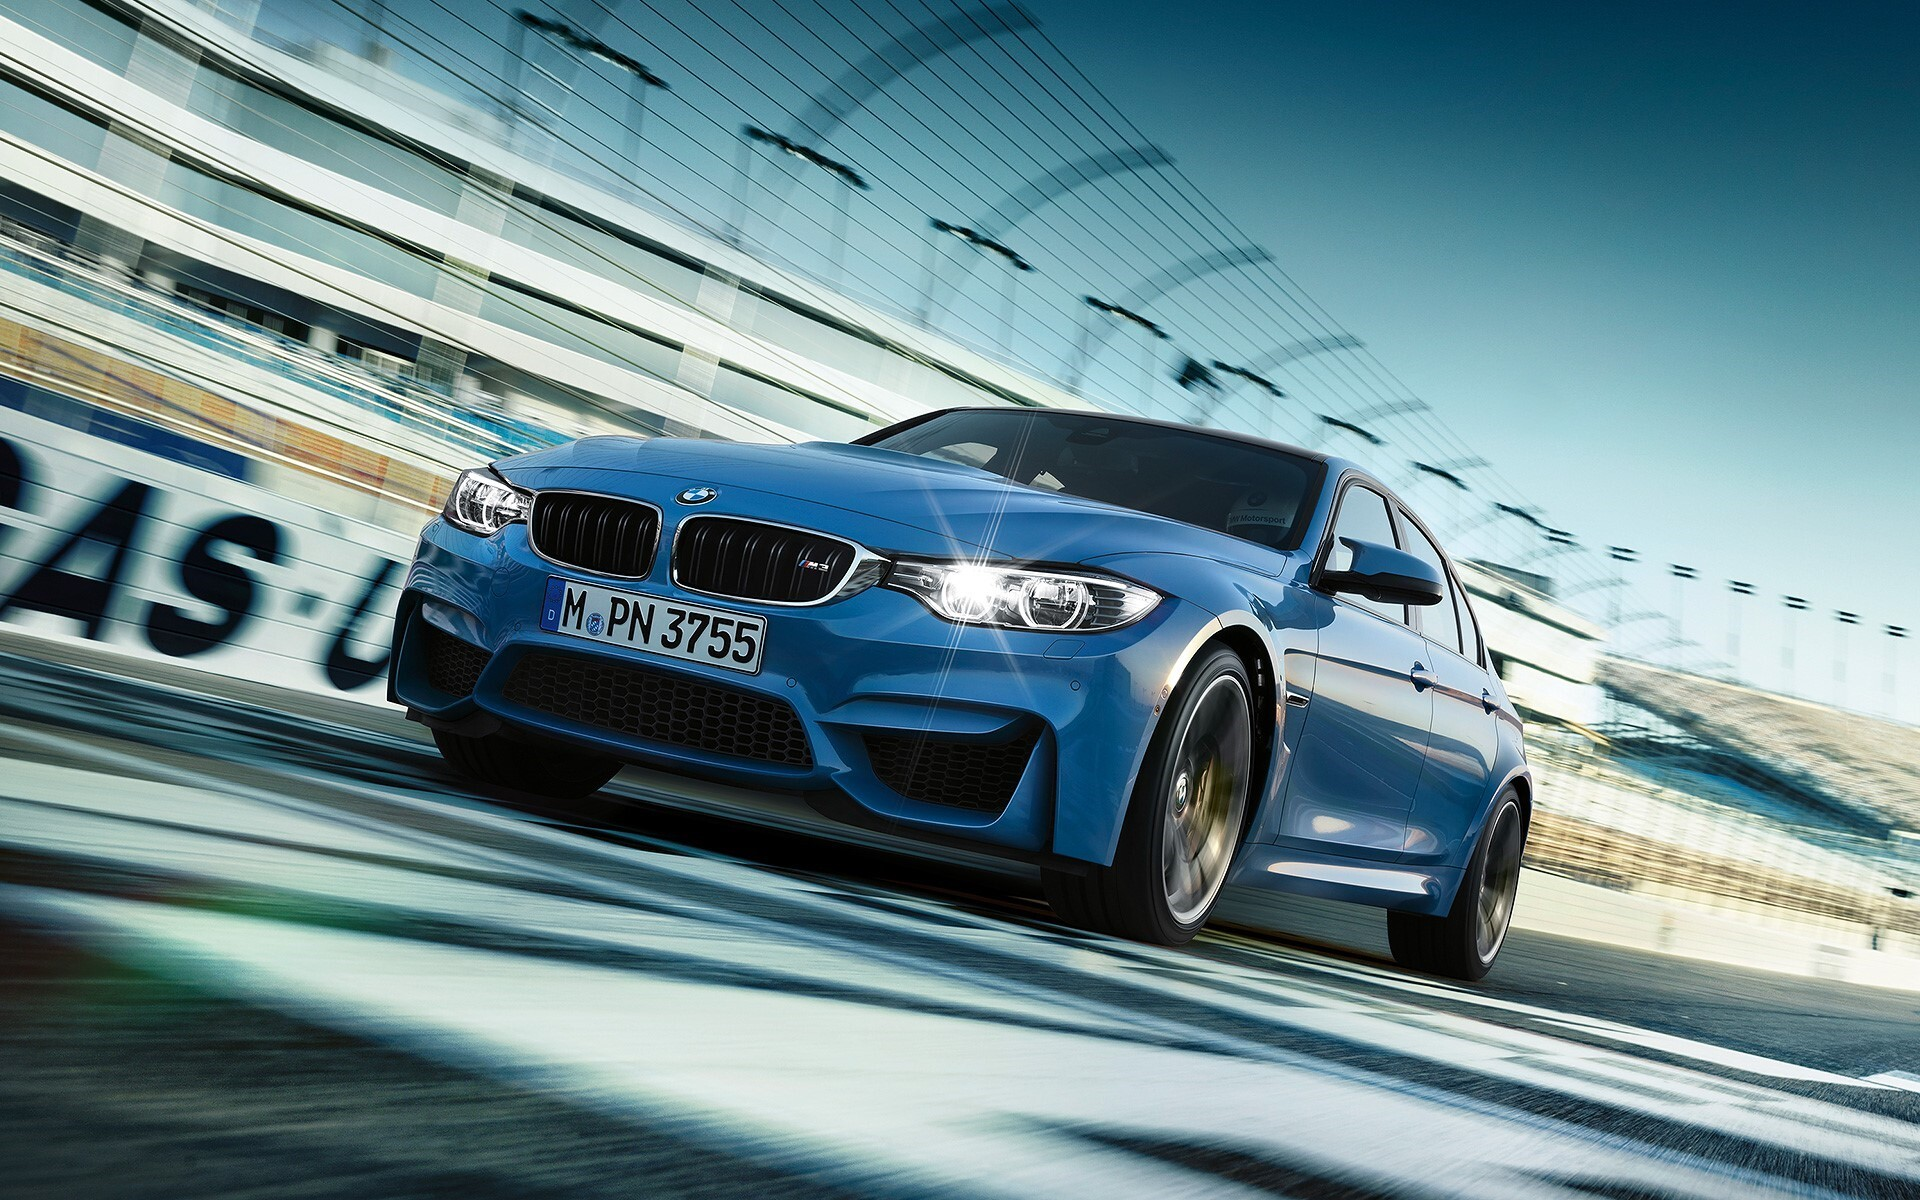 BMW F80 M3 on Road Car Photos | HD Wallpapers